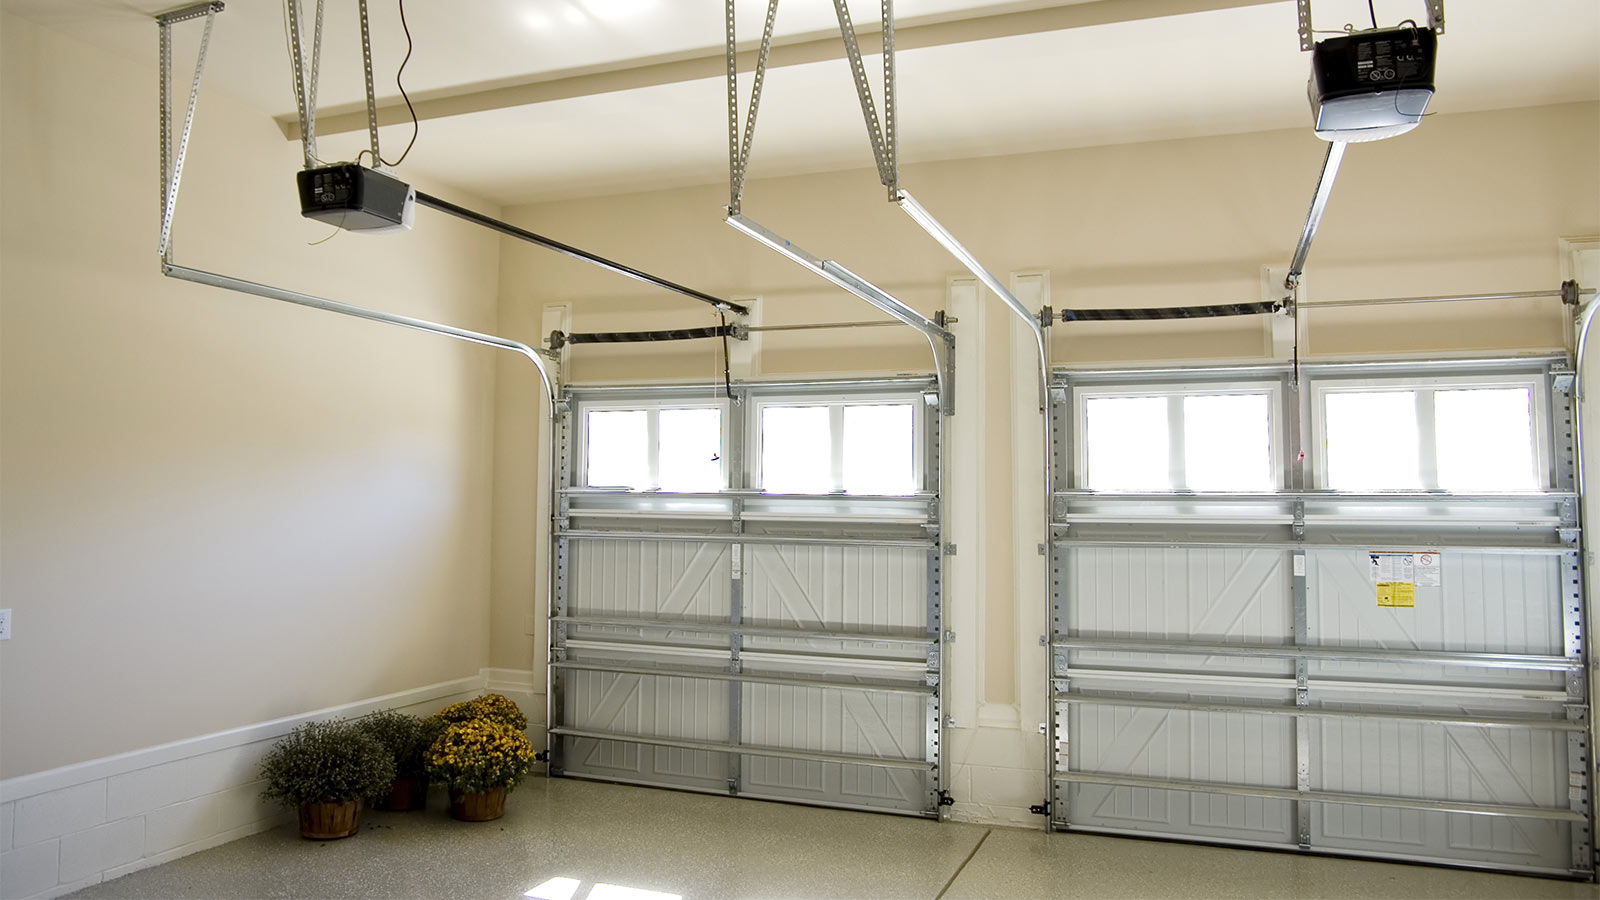 Sectional Garage Doors from Electric Roller Garage Doors Hertfordshire suppliers.